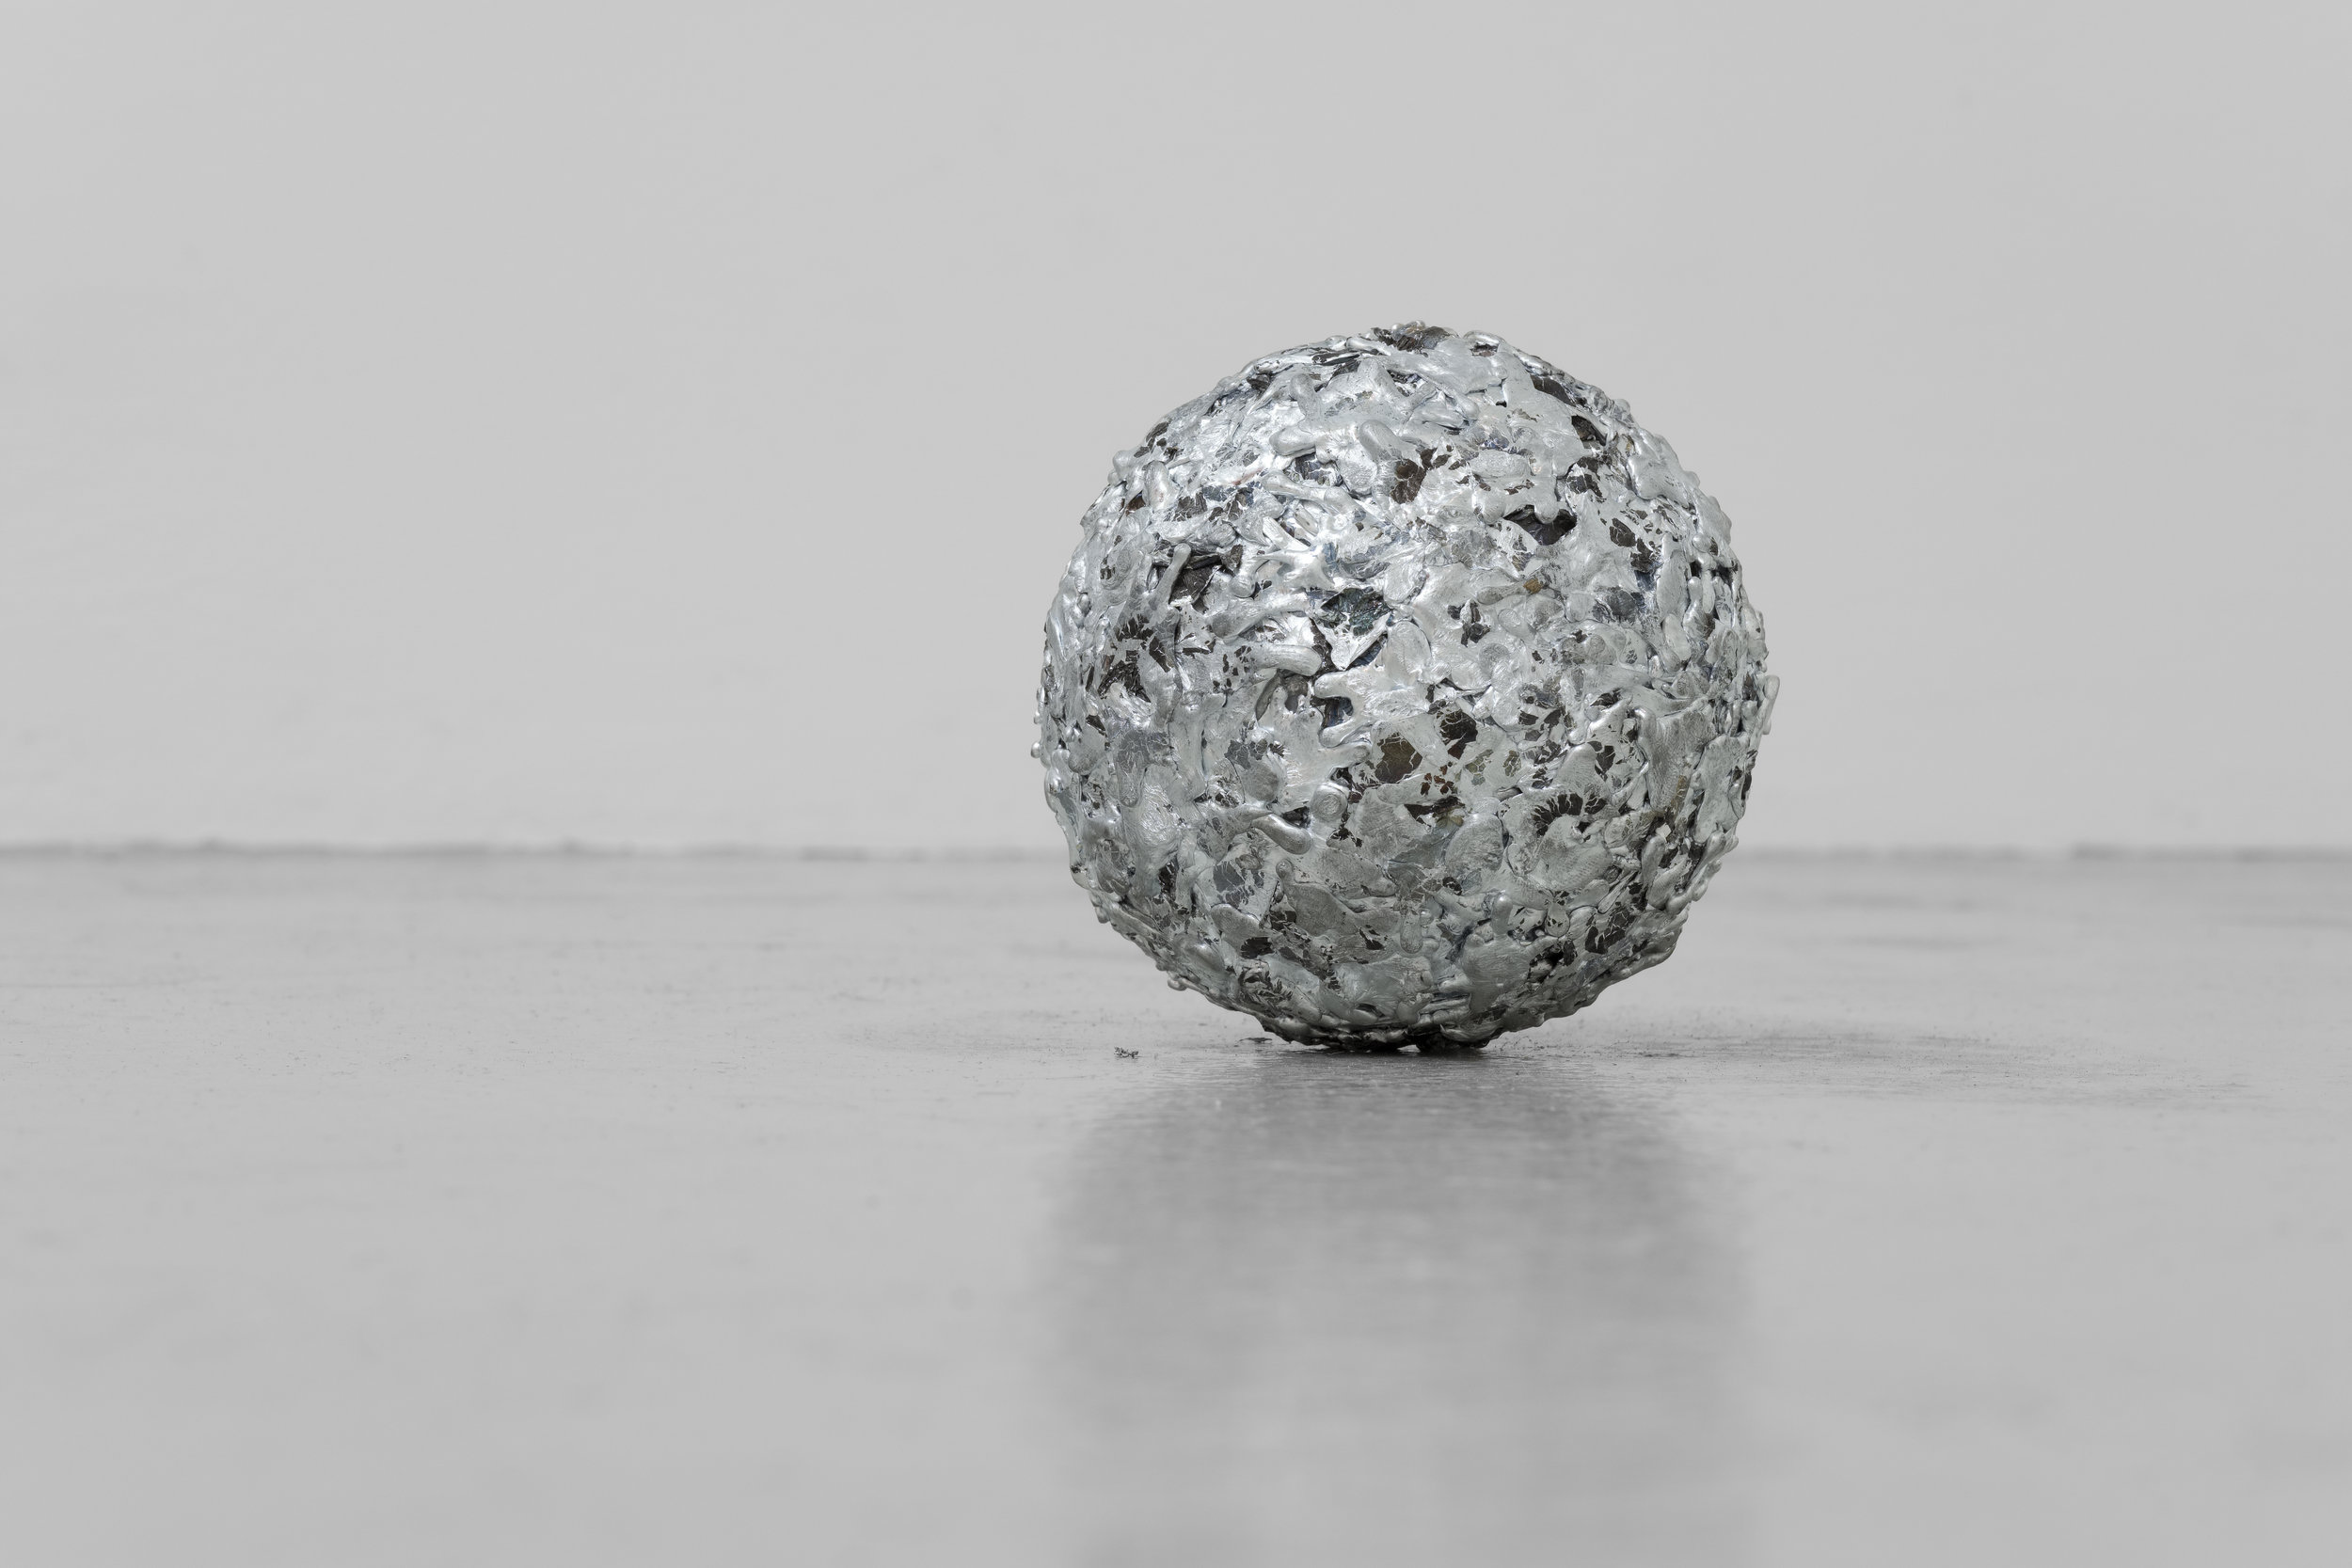 Matt Browning,  Untitled,  2018, Zinc, copper, 4 x 4 inches (10.16 x 10.16 cm)